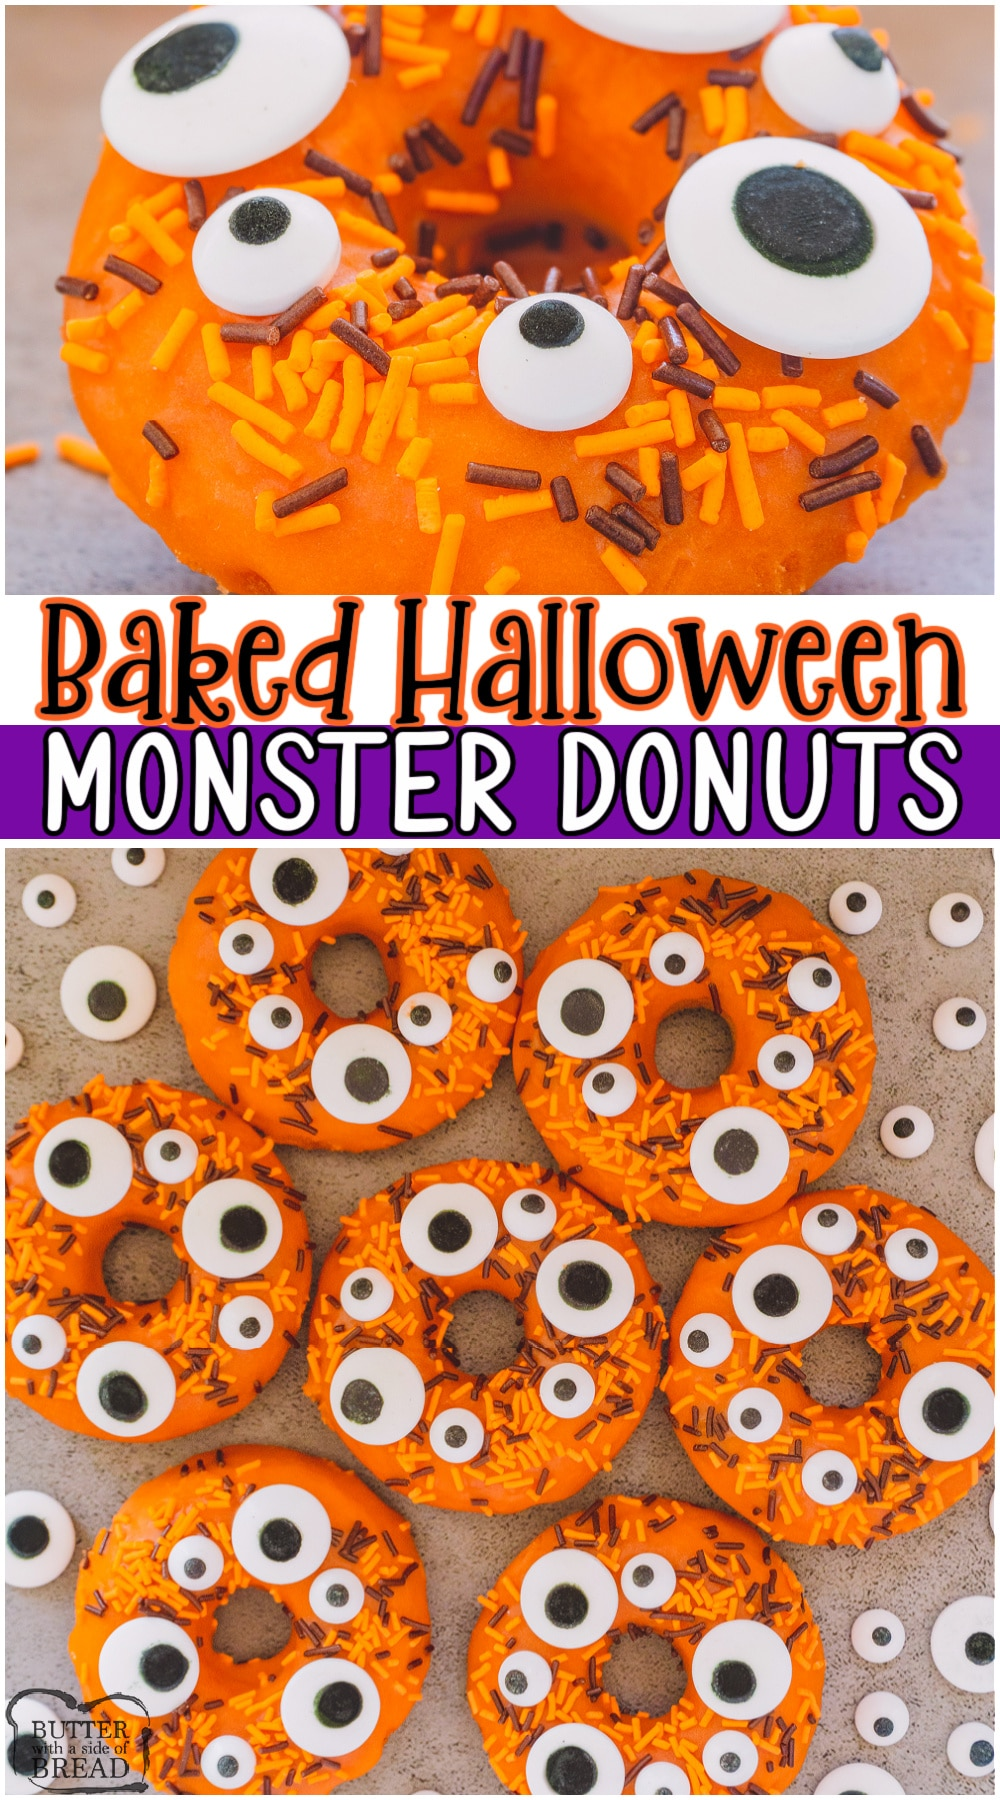 Monster donuts are the perfect spooky treat for Halloween! Made from scratch these baked donuts are soft, moist with a wonderful cinnamon vanilla flavor. Iced & topped with spooky monster eyes for fun!  #donuts #baked #Halloween #monsters #festive #easyrecipe from BUTTER WITH A SIDE OF BREAD